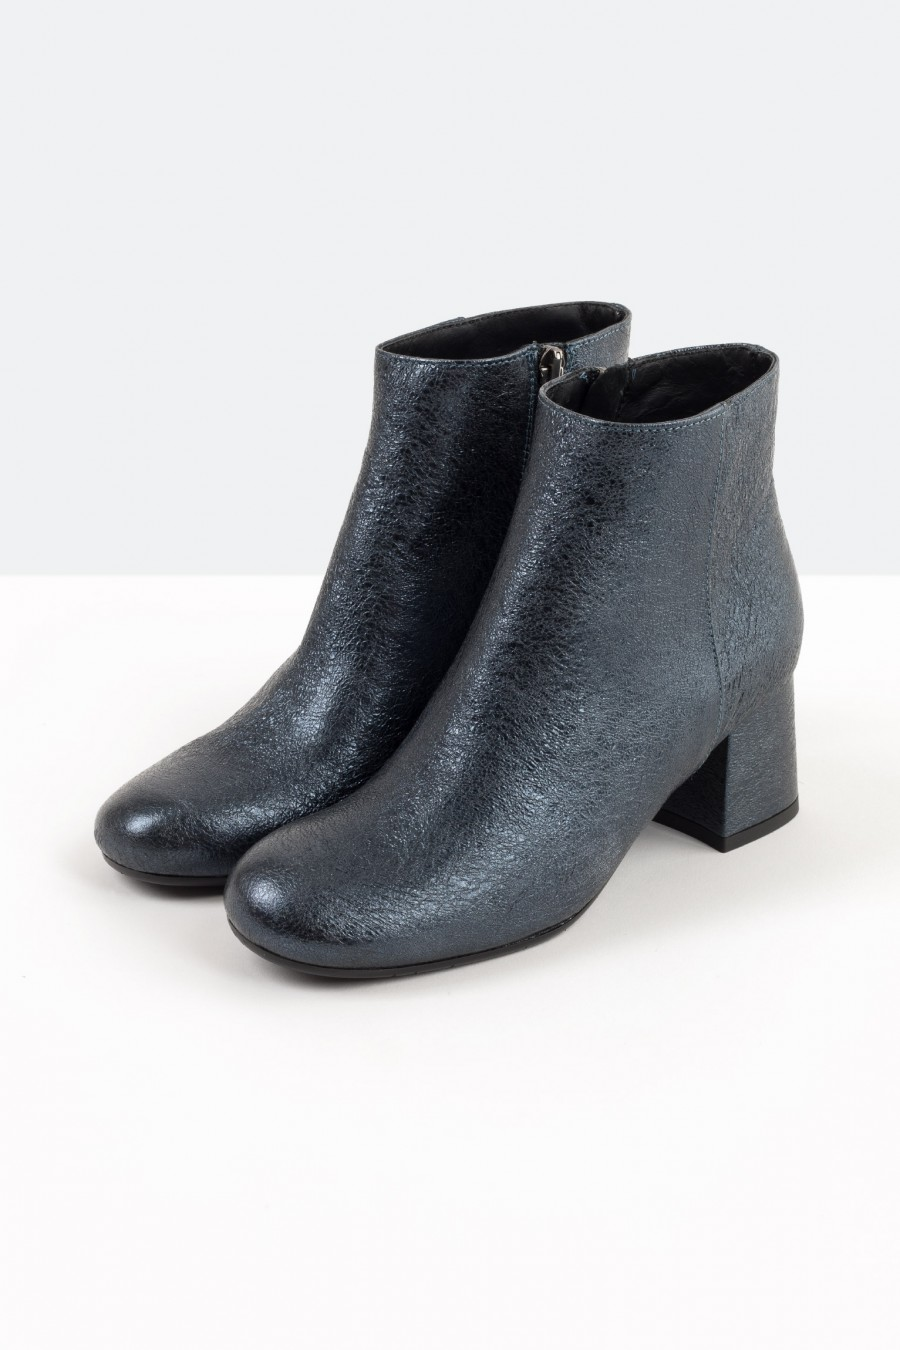 Metallic blue ankle boots